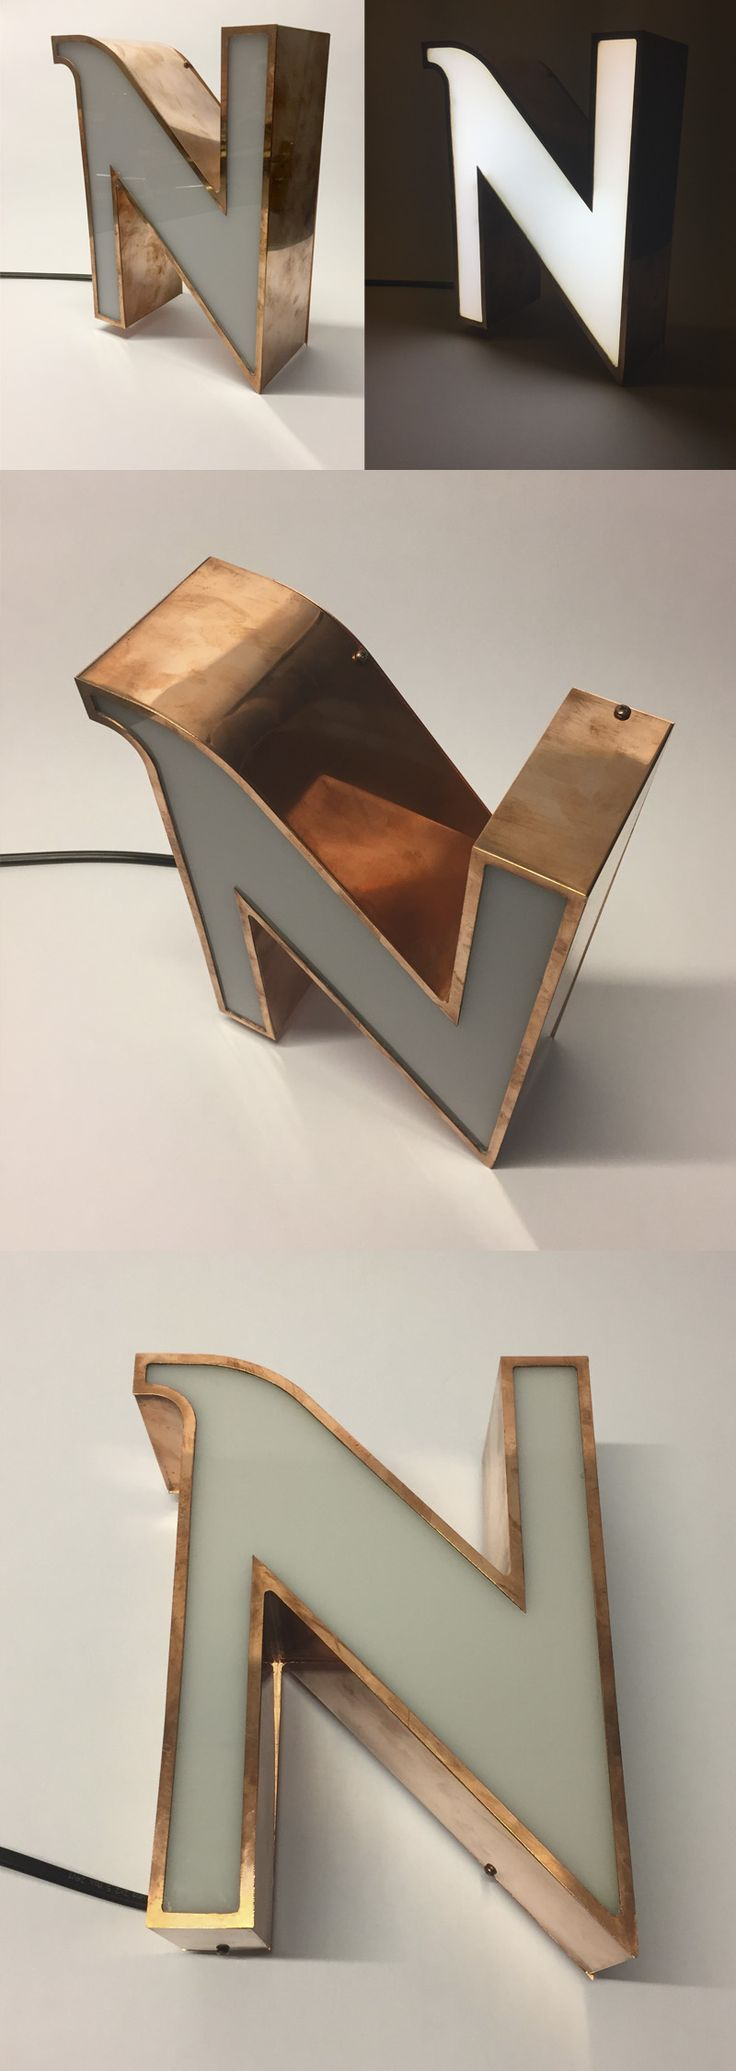 Sehr schöne Kupfer Metal LED-Buchstaben - beautiful copper metal LED channel lettering